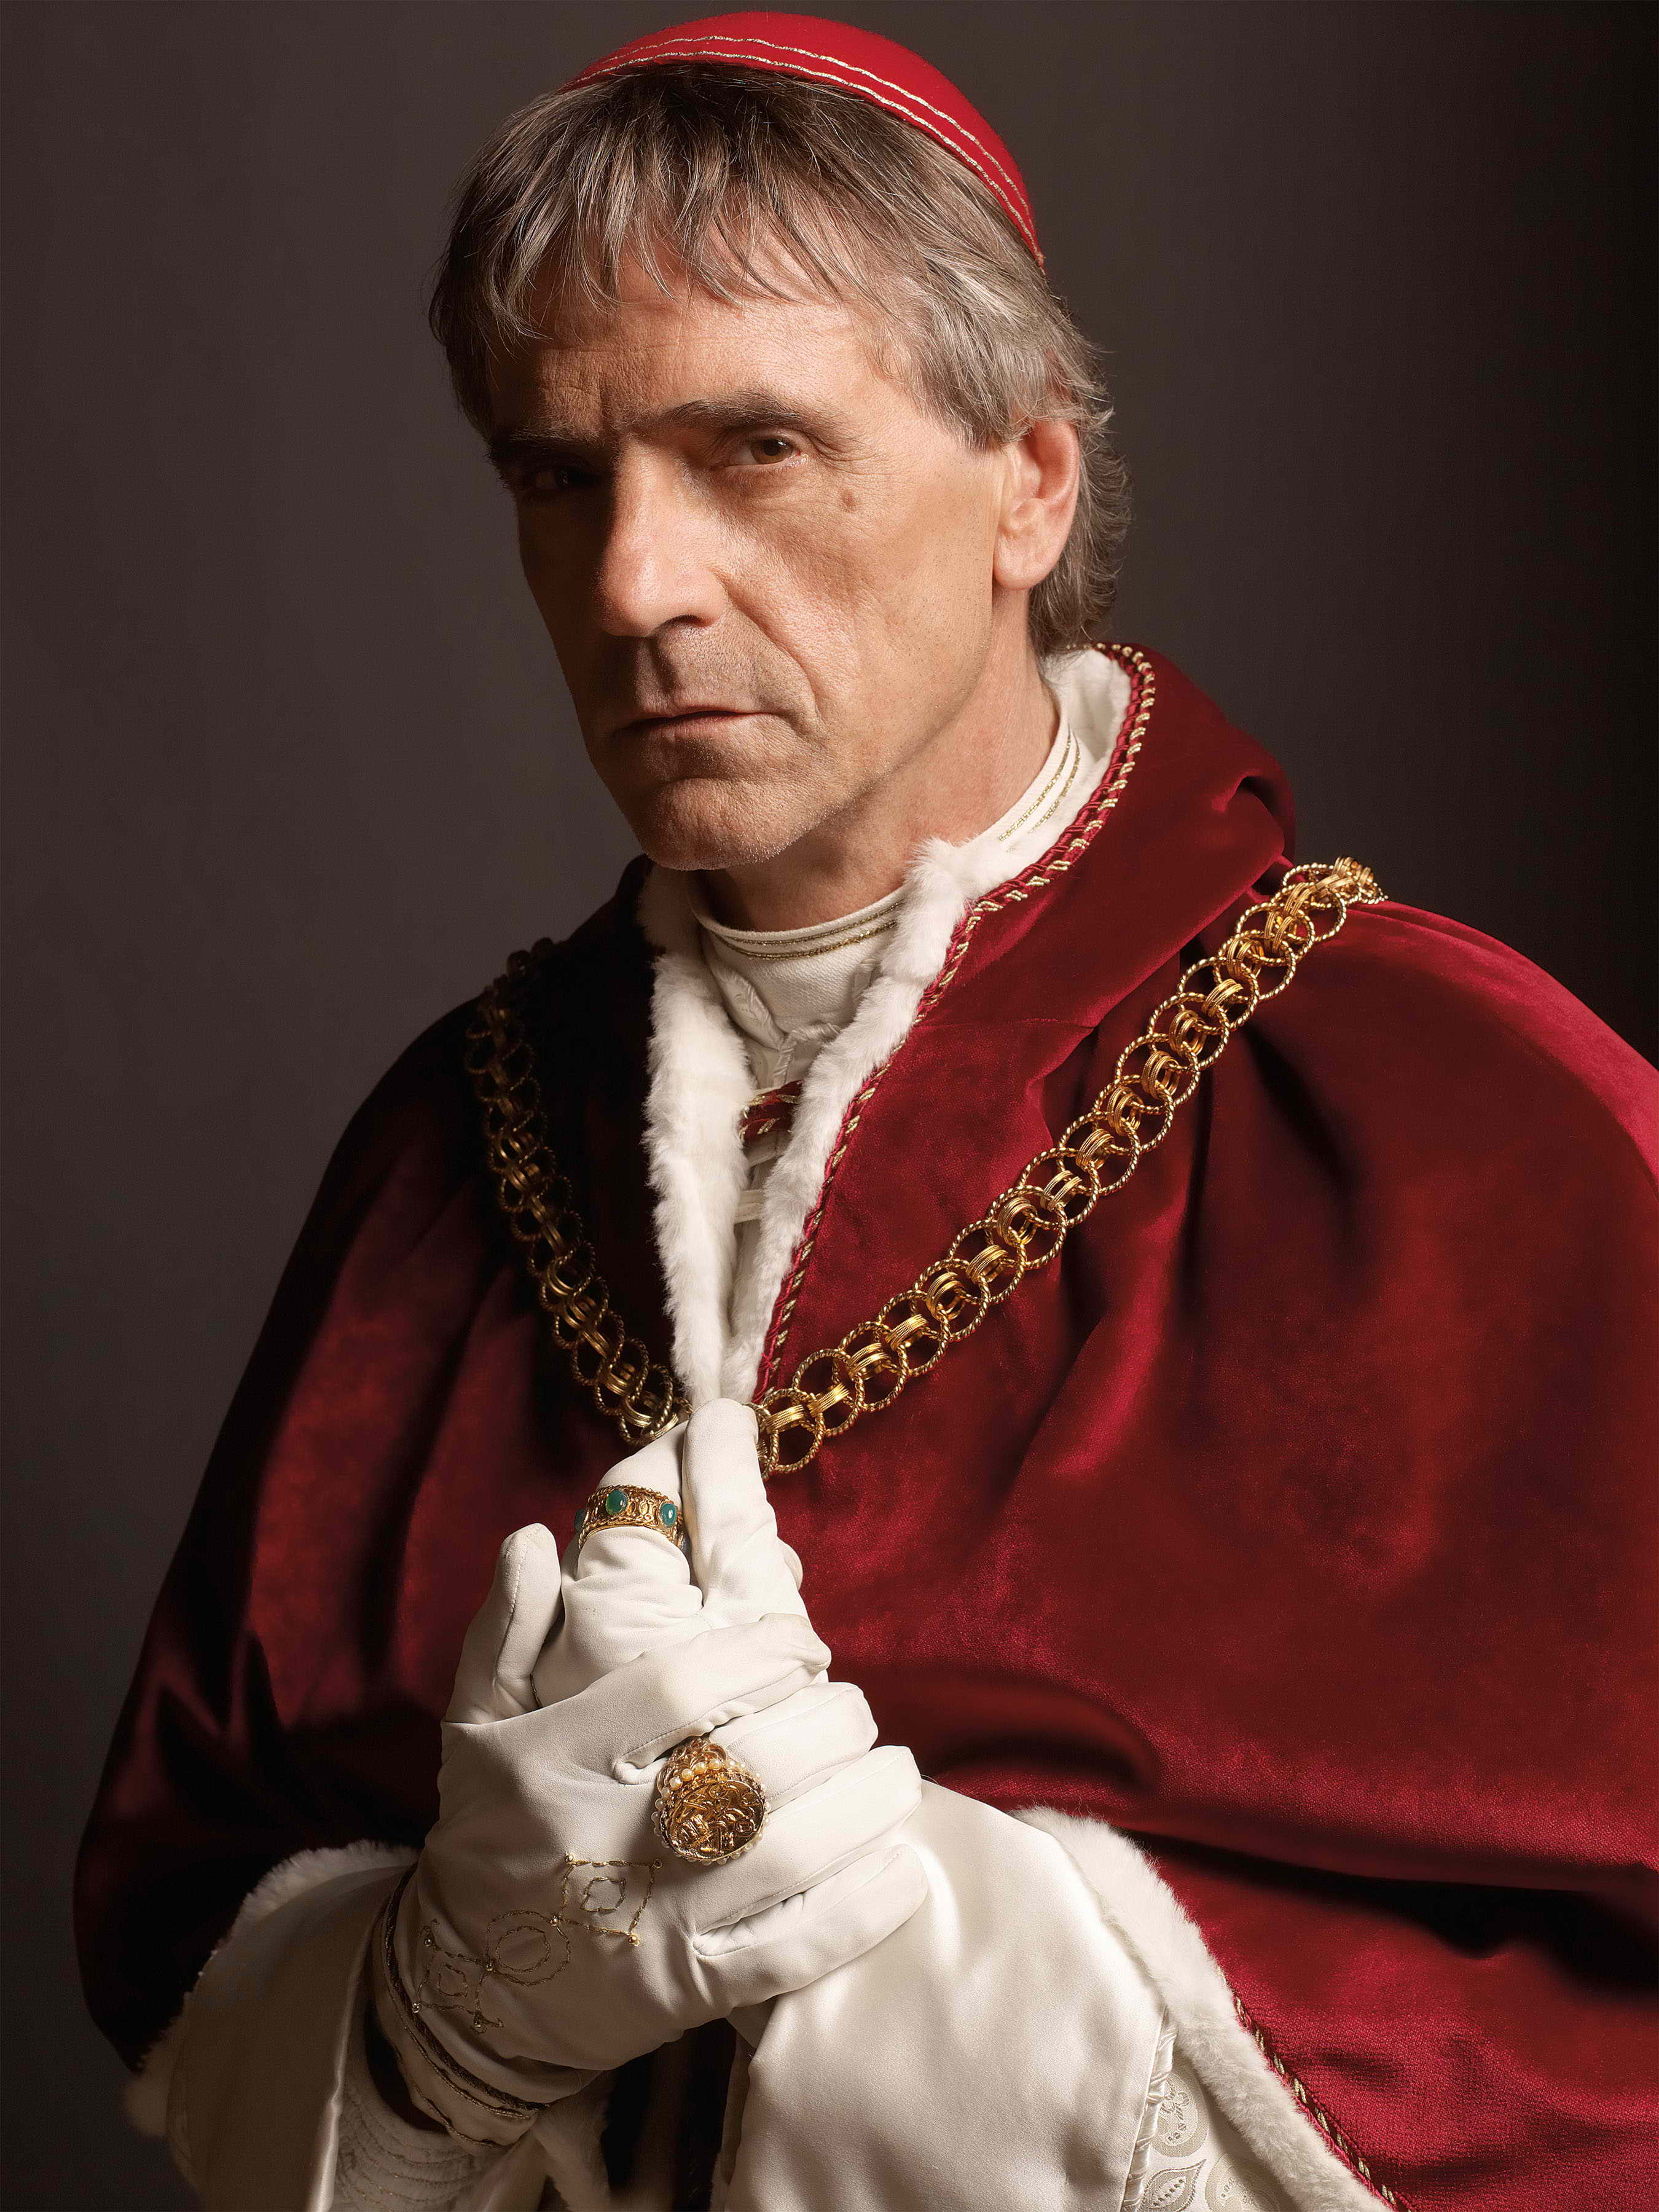 Jeremy Irons photo, pics, wallpaper - photo #